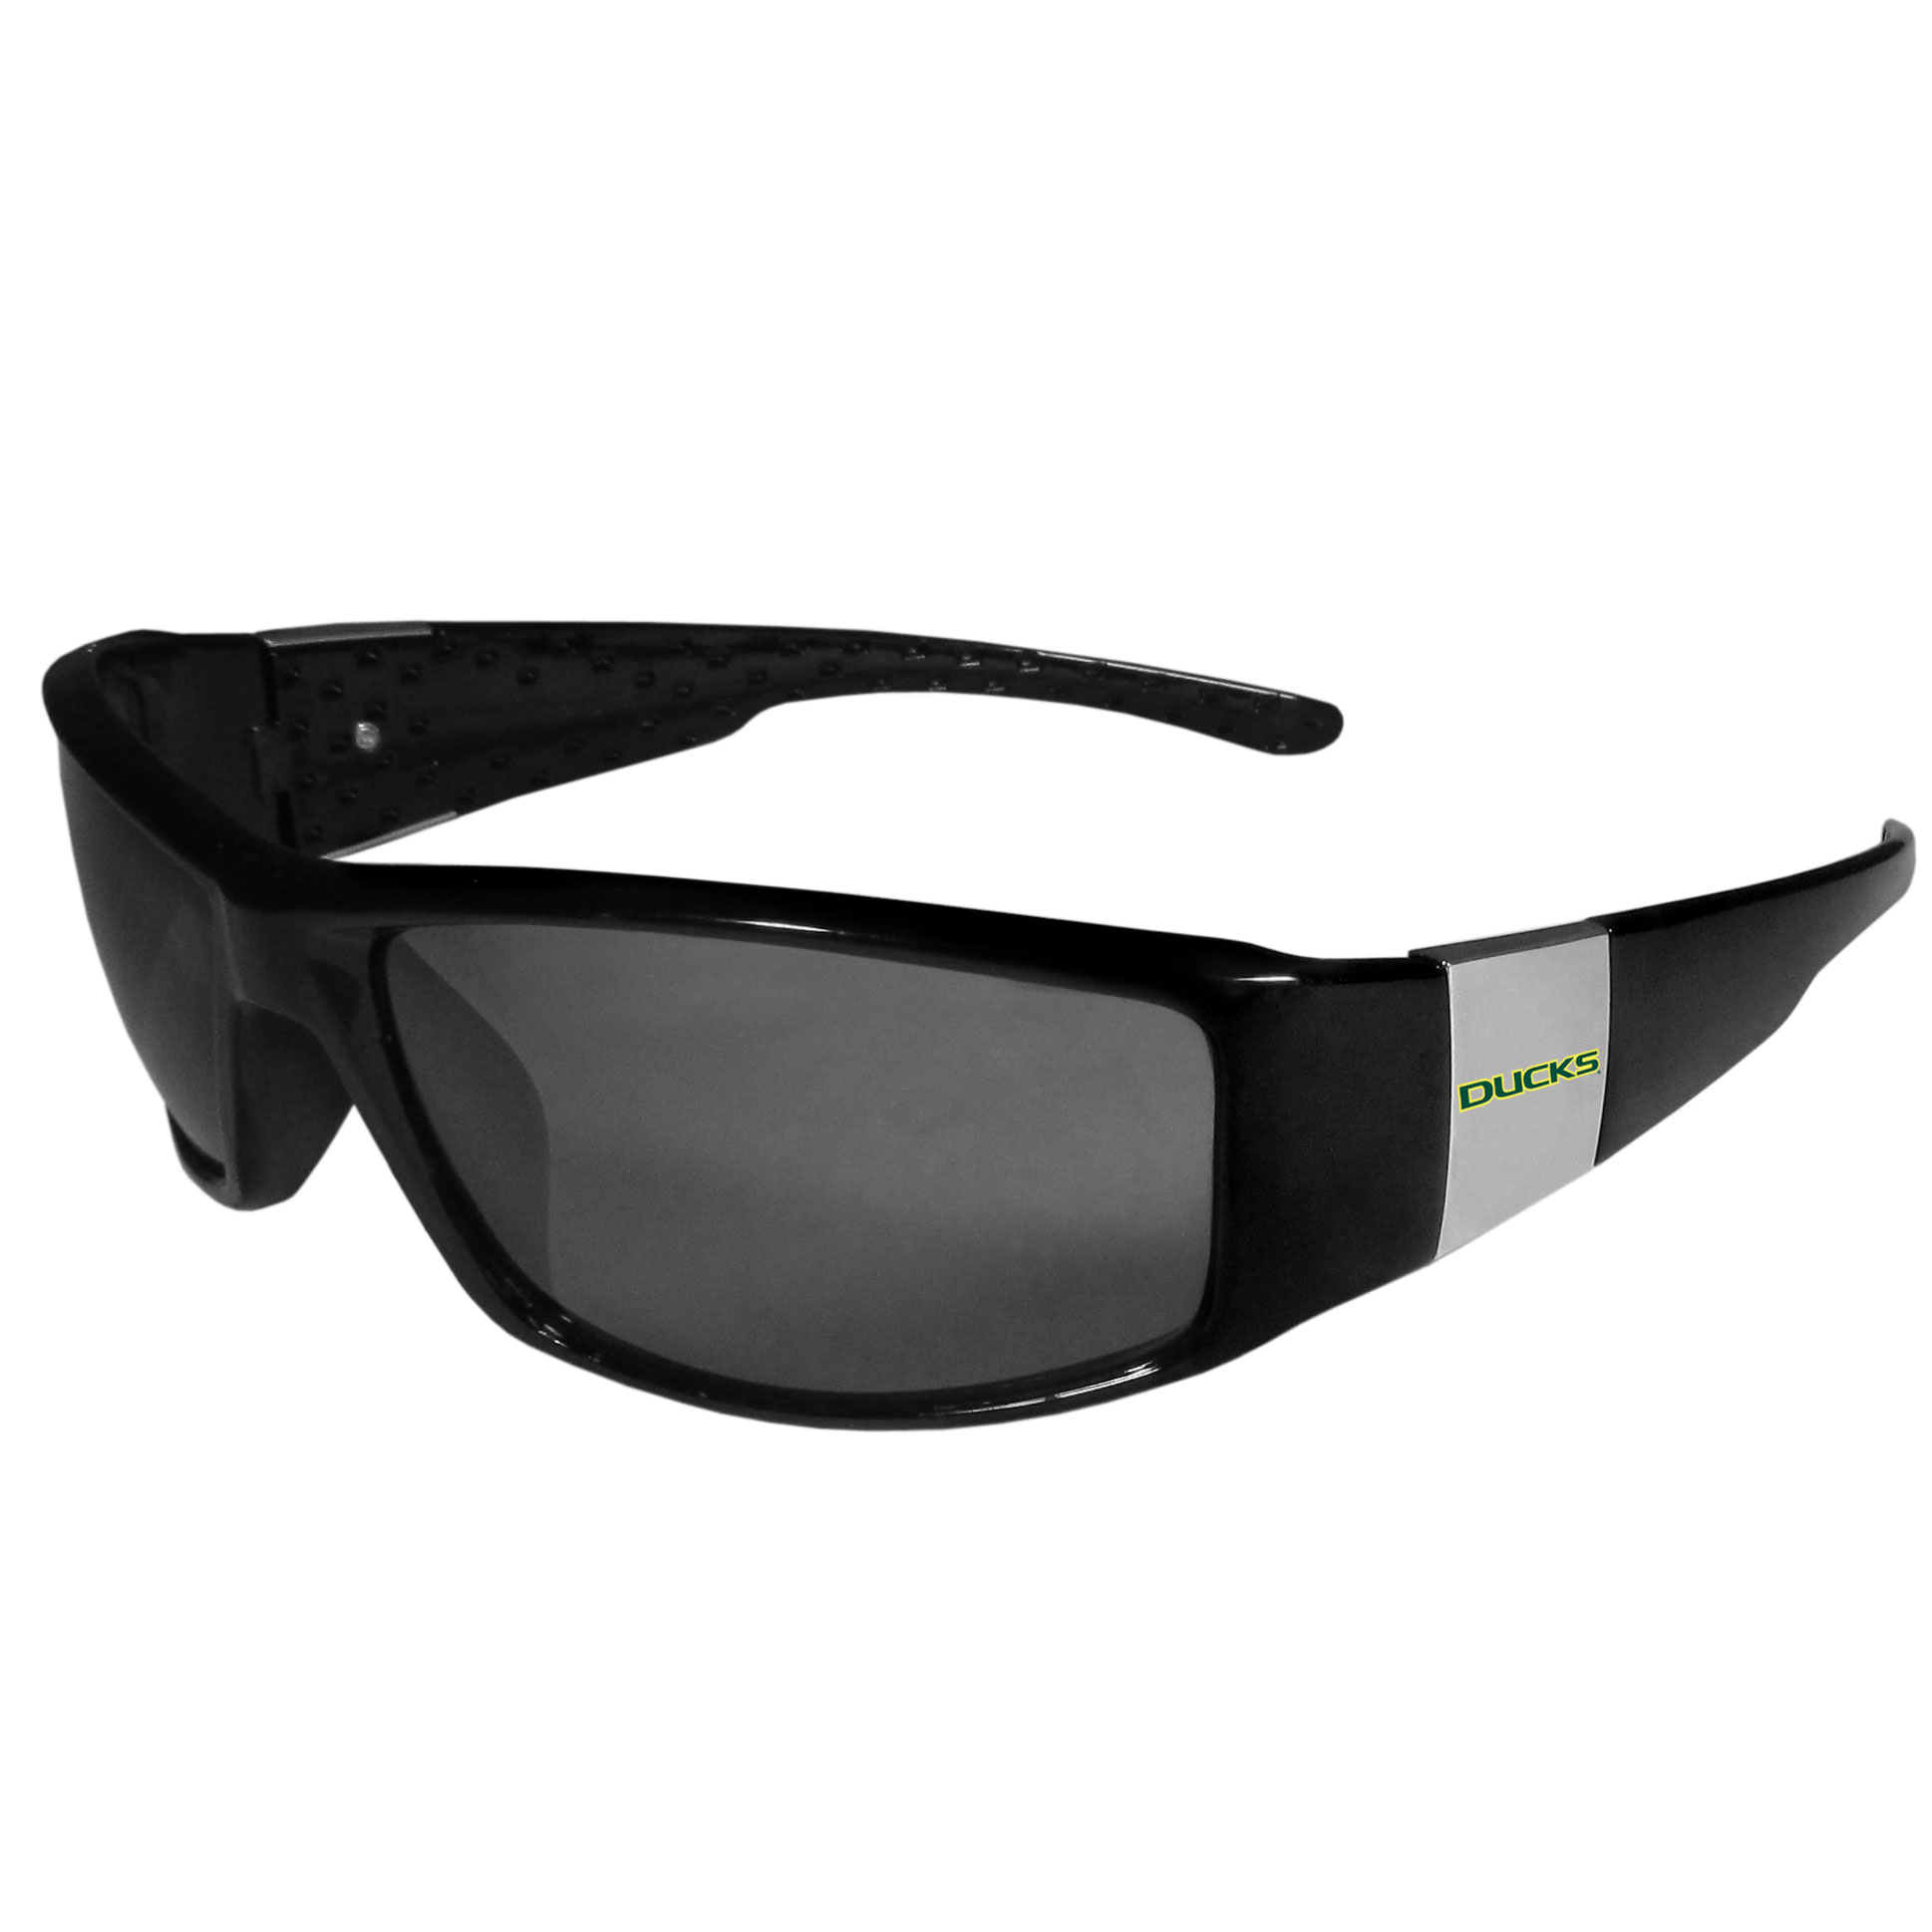 Oregon Ducks Chrome Wrap Sunglasses - These designer inspired frames have a sleek look in all black with high-polish chrome Oregon Ducks shields on each arm with a printed logo. The shades are perfect for any outdoor activity like; golfing, driving, hiking, fishing or cheering on the team at a tailgating event or at a home game day BBQ with a lens rating of 100% UVA/UVB for maximum UV protection. The high-quality frames are as durable as they are fashionable and with their classic look they are the perfect fan accessory that can be worn everyday for every occasion.